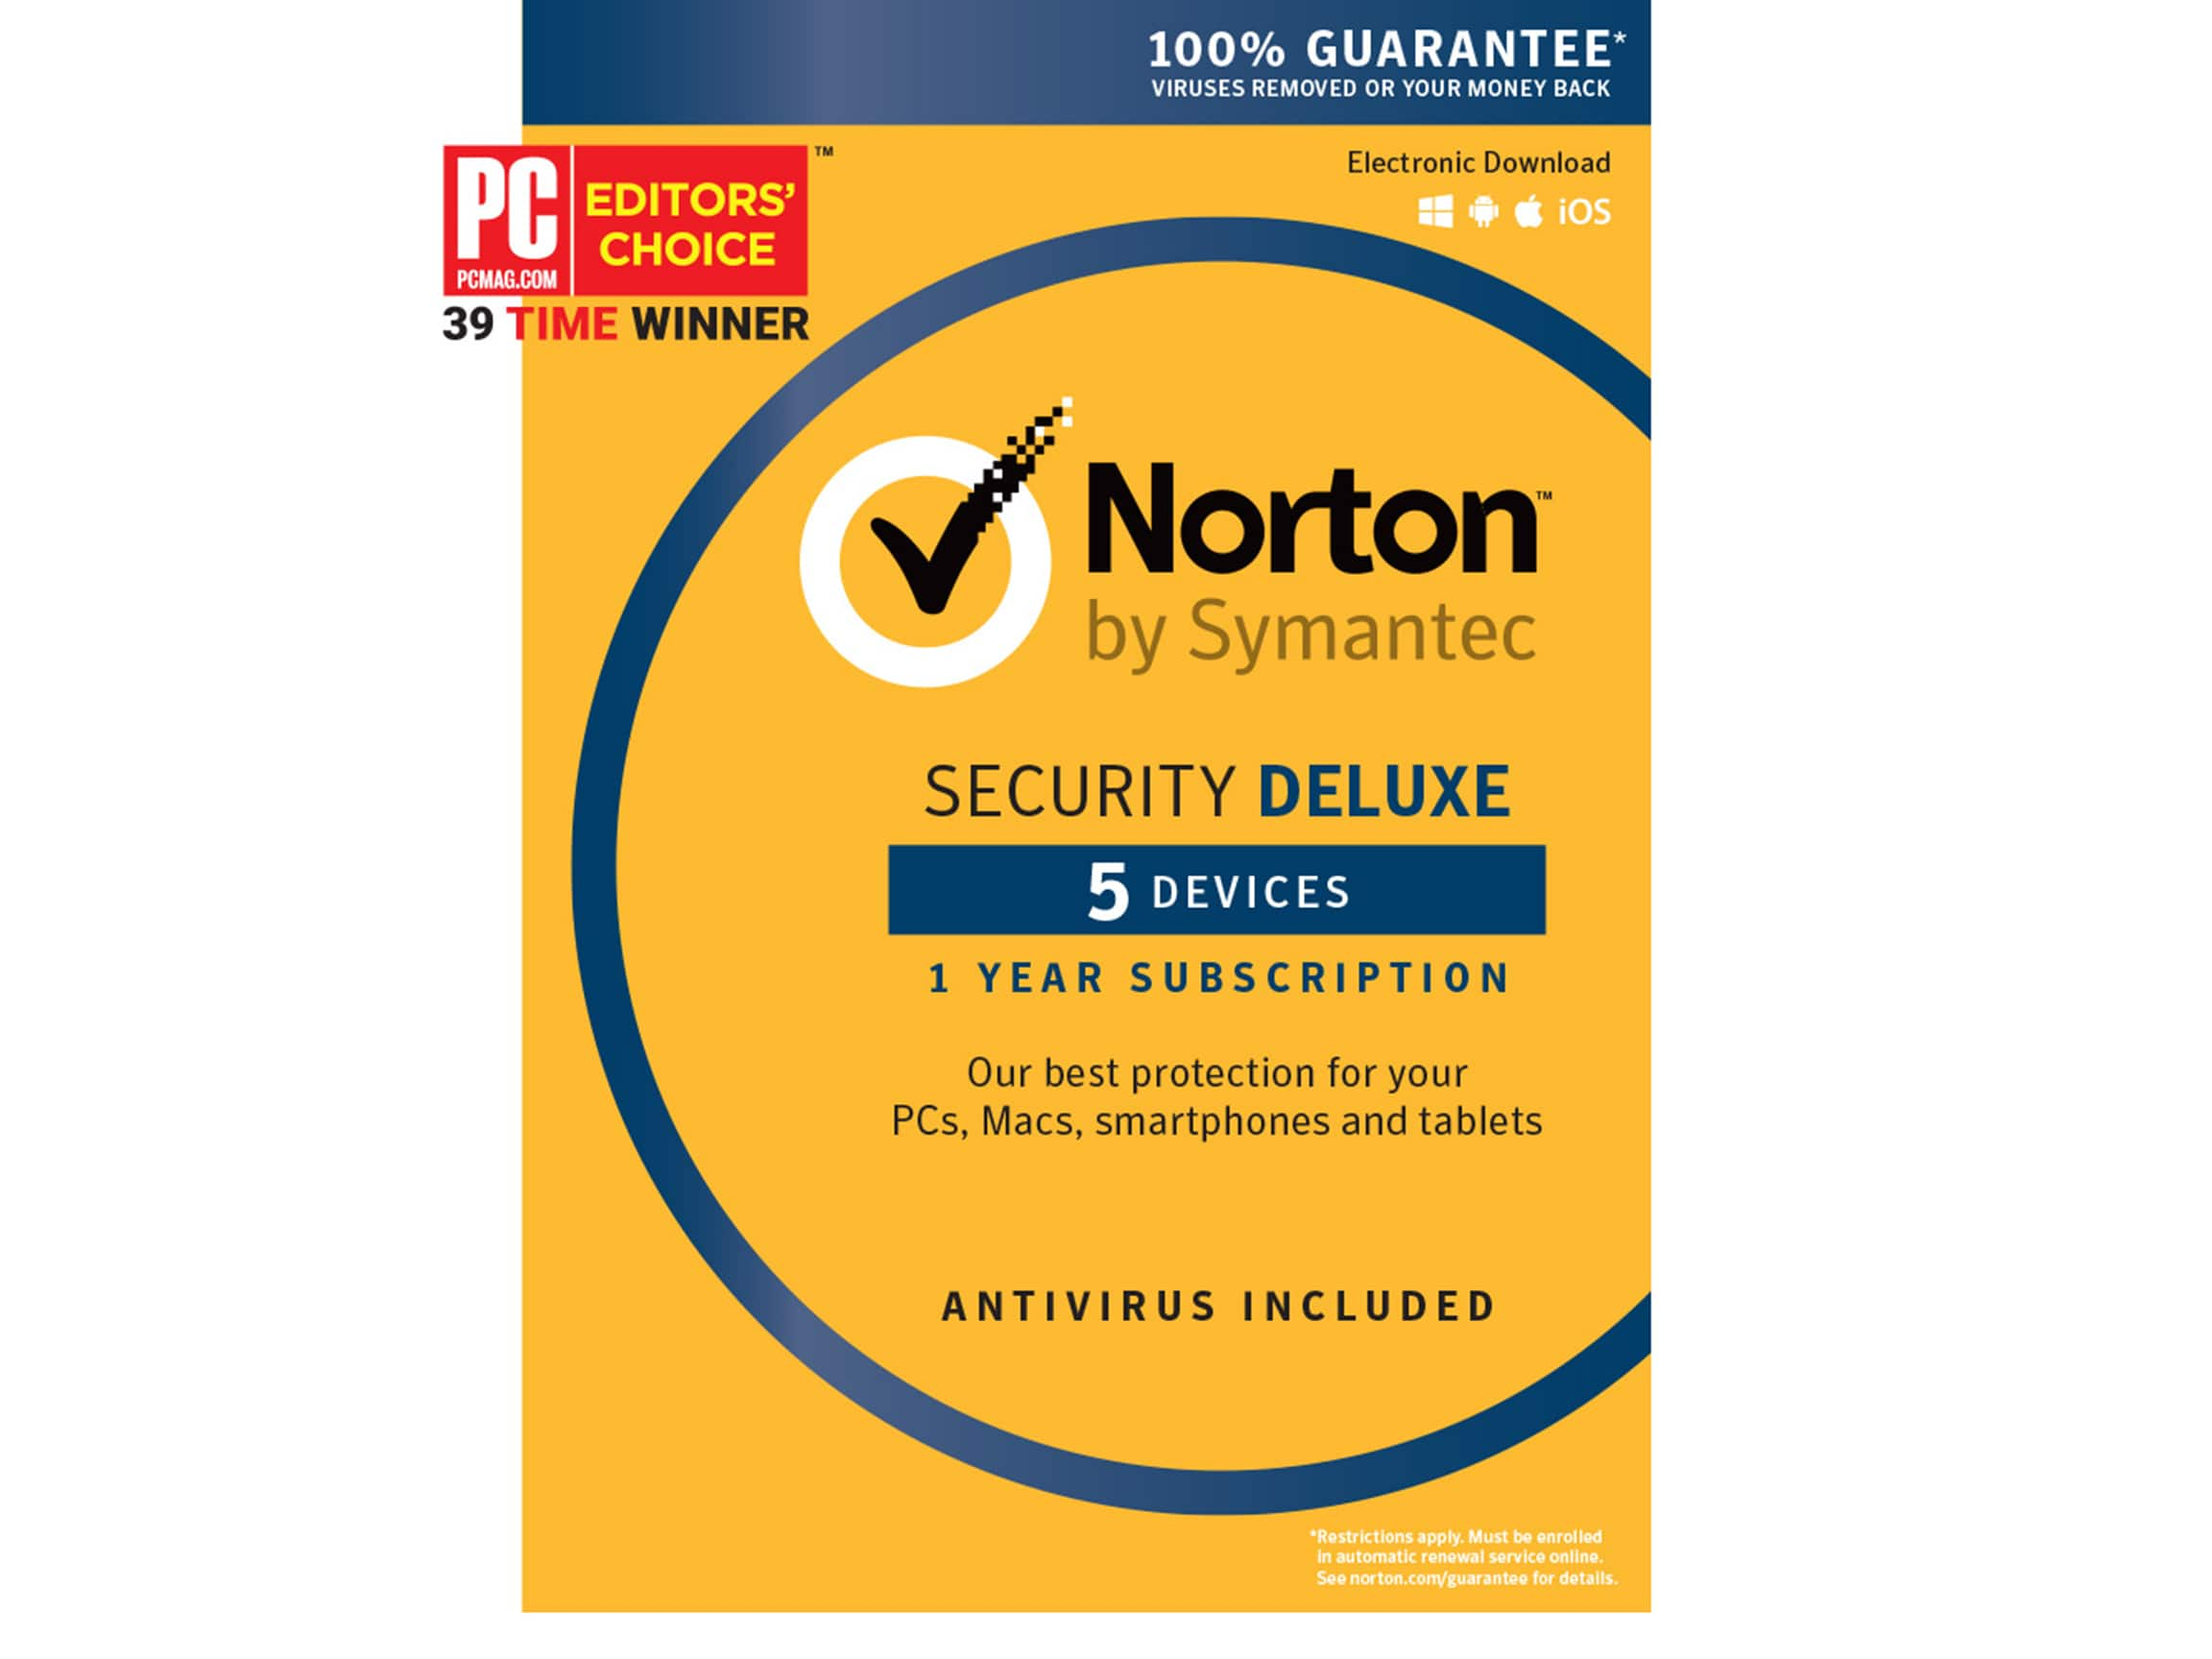 Symantec Norton Security Deluxe 5 Devices $17.99 AC + Free Shipping